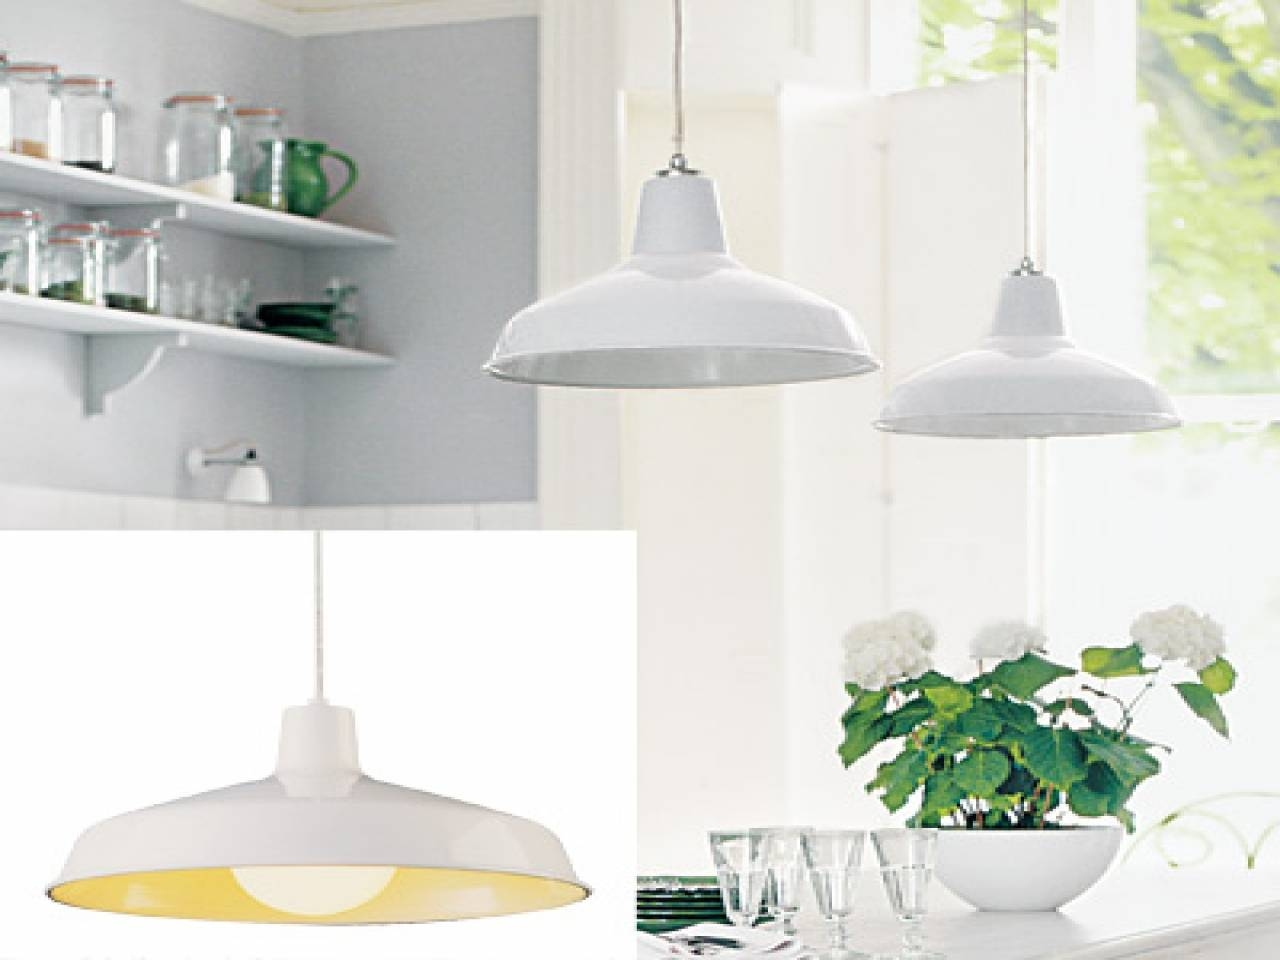 Kitchen White Barn Pendants, Barn Light Pendant Create A Simple Intended For Galvanized Pendant Barn Lights (View 12 of 15)